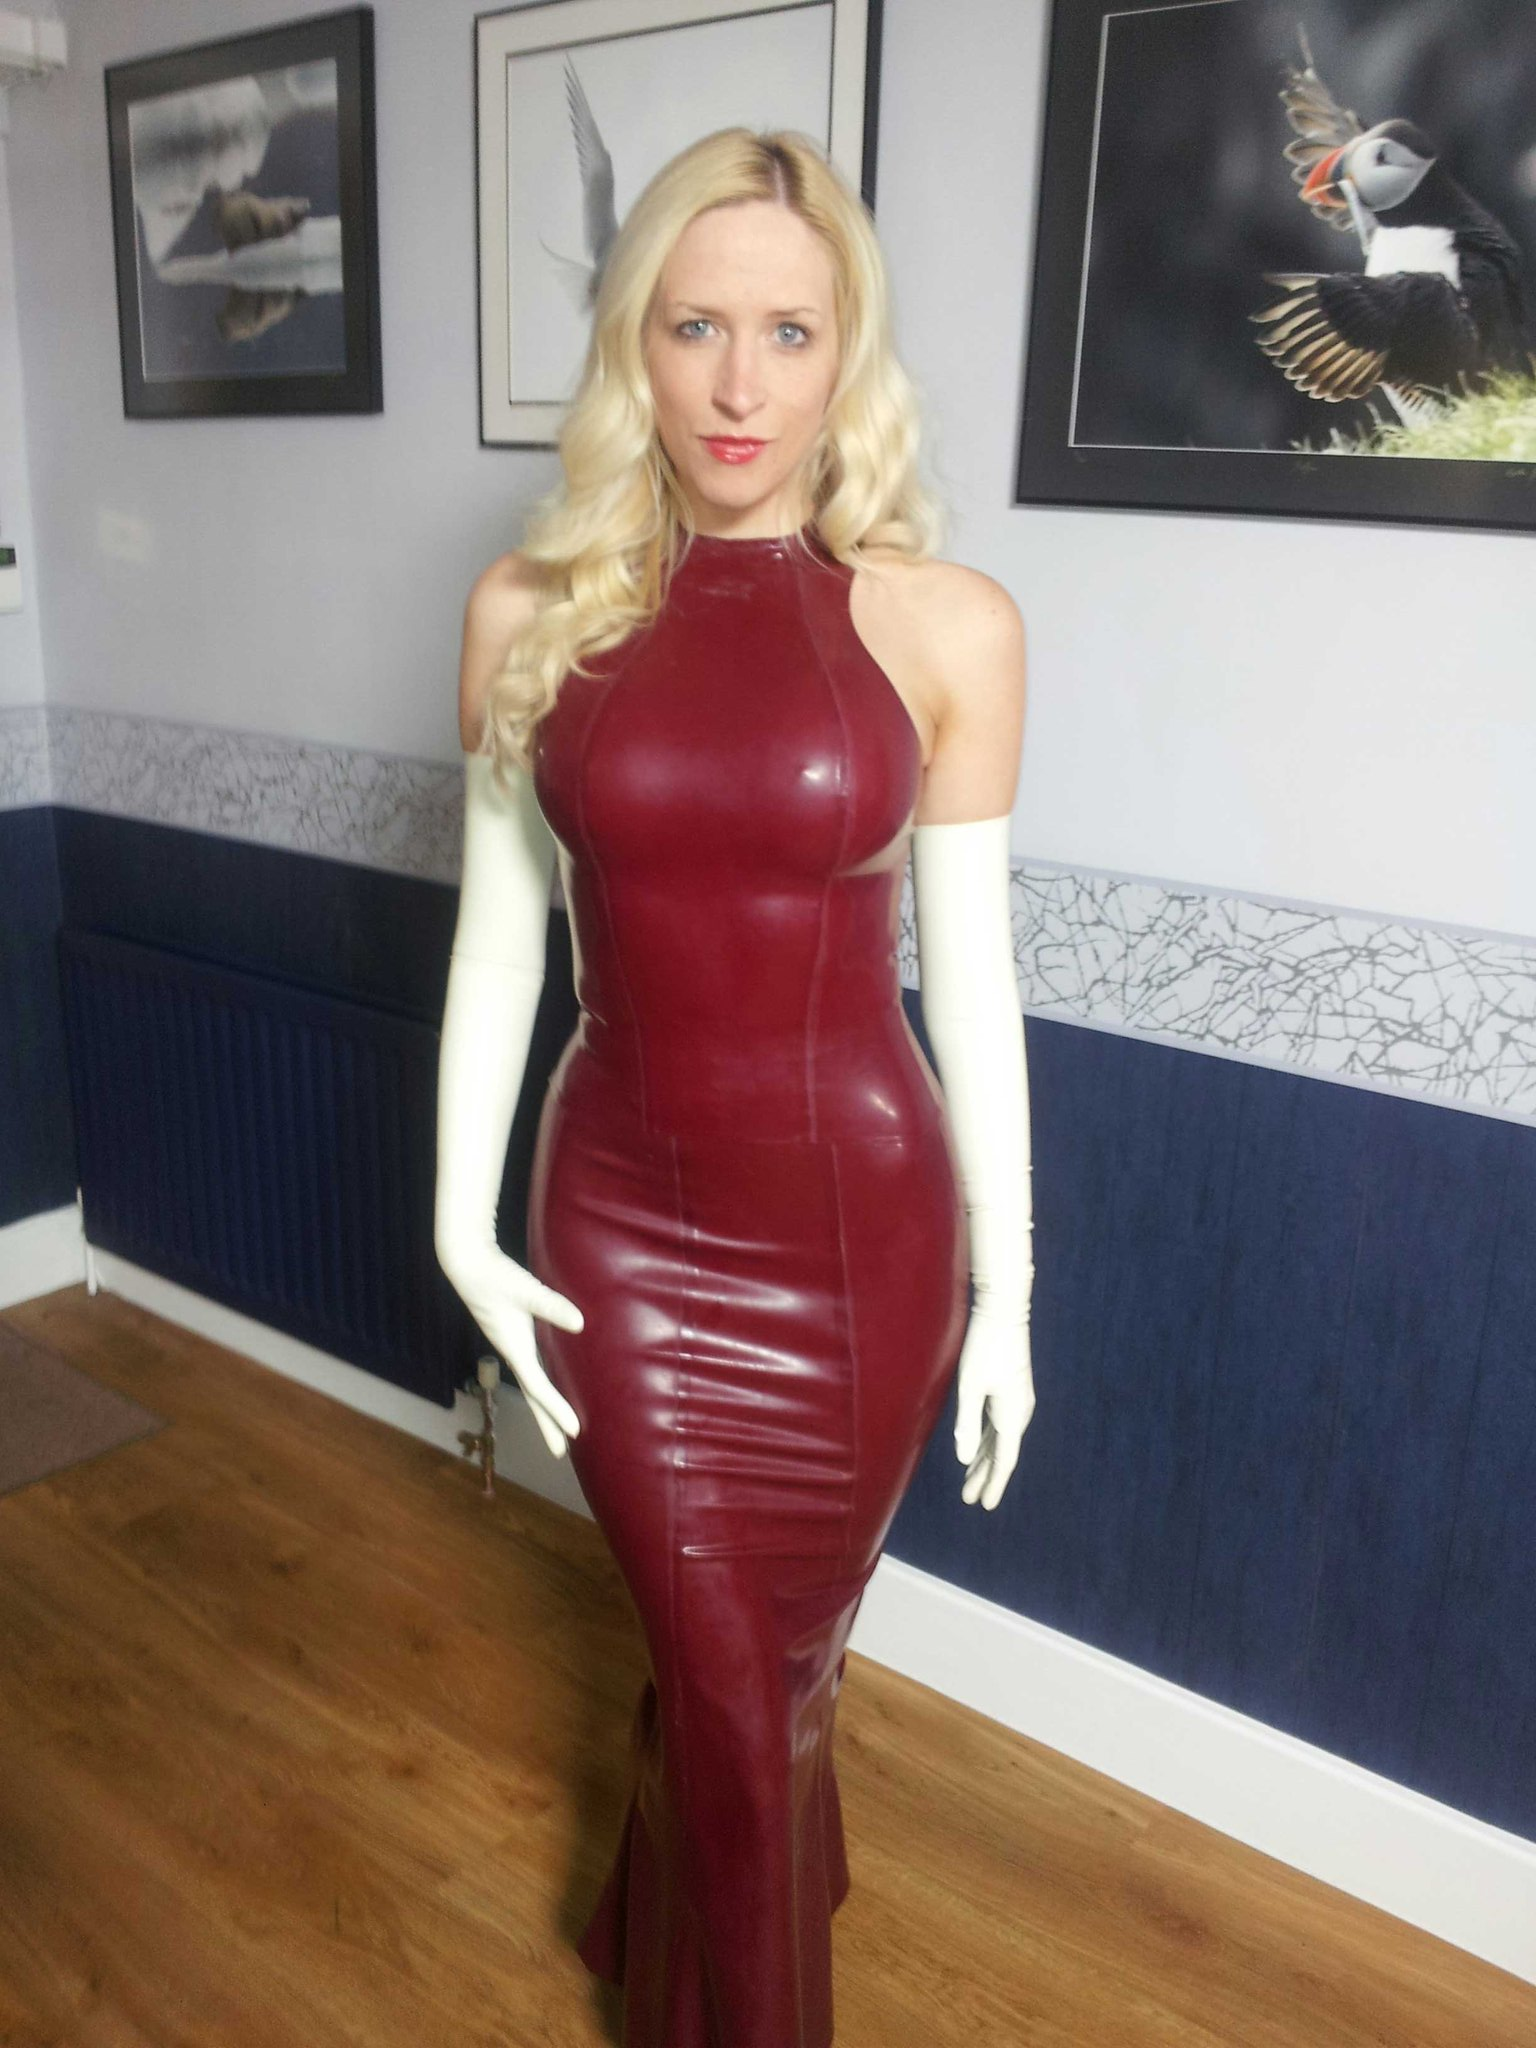 who-is-mature-in-latex-dress